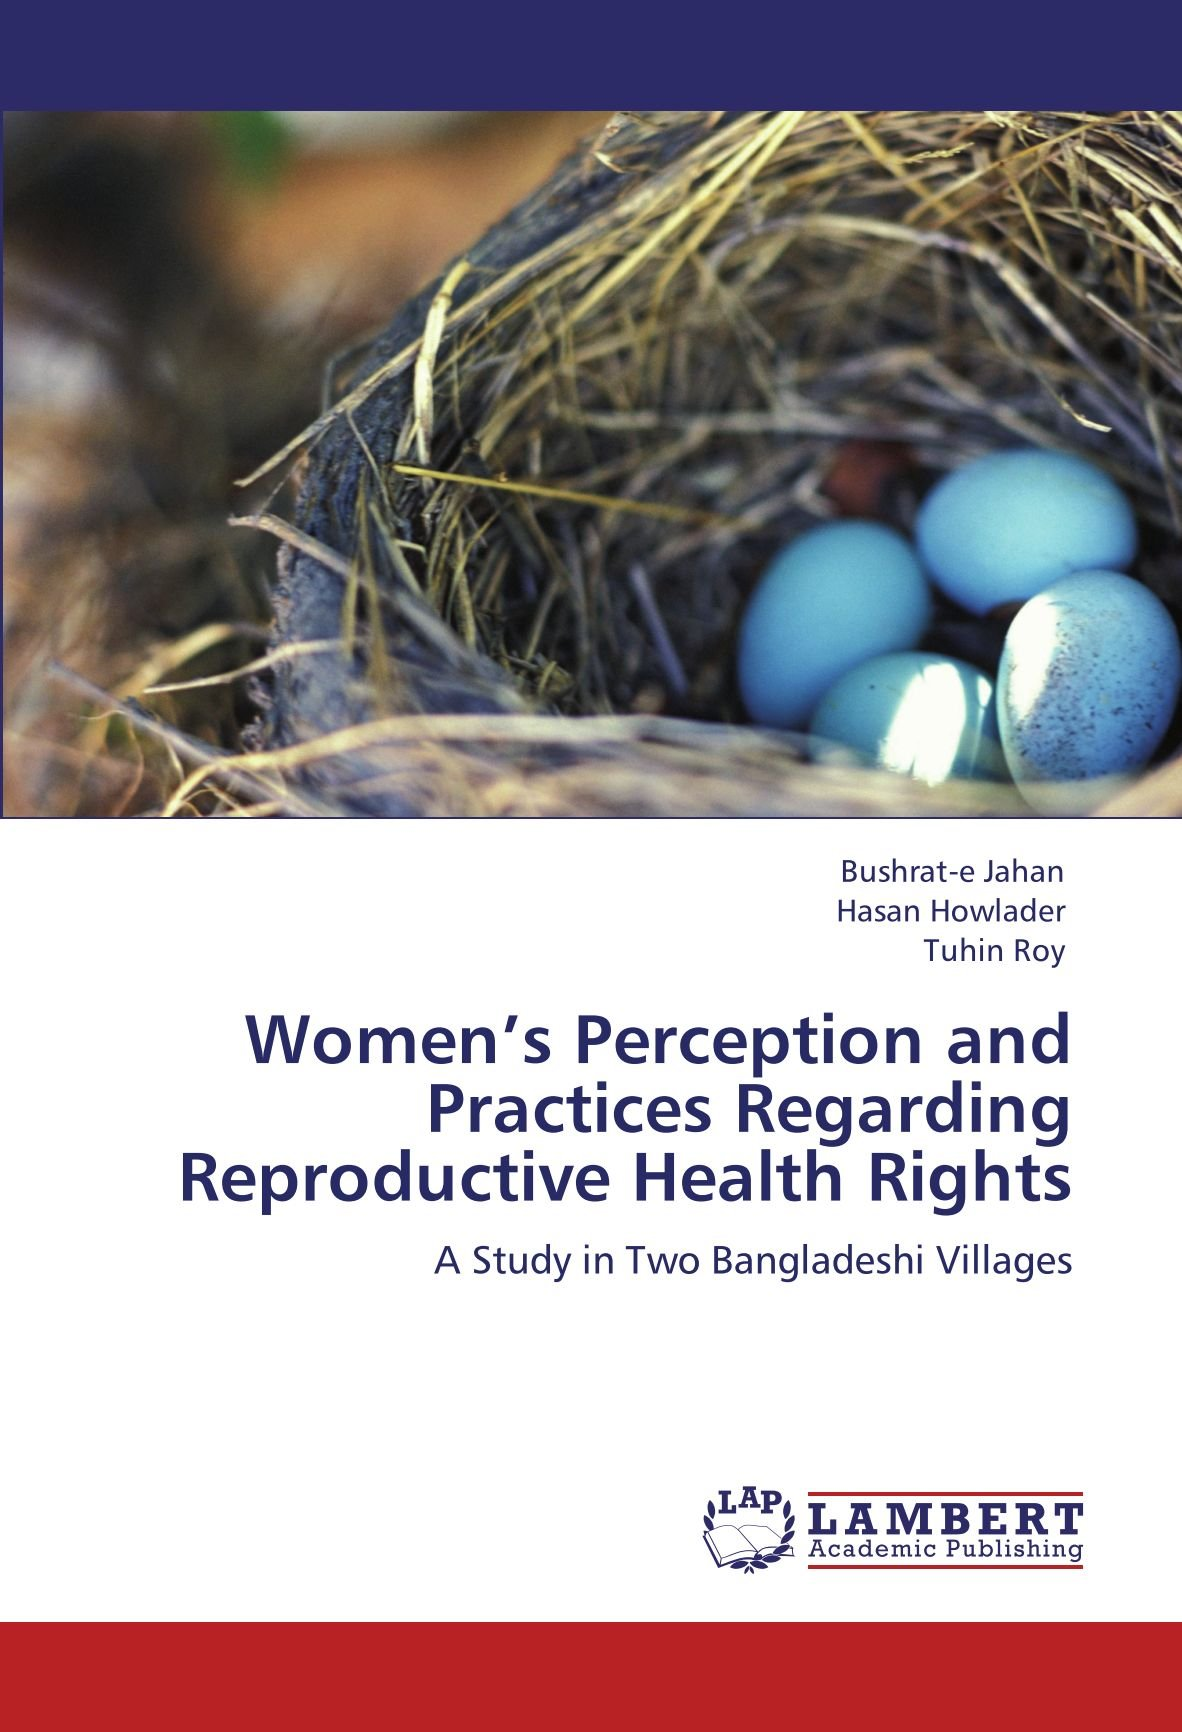 Women's Perception and Practices Regarding Reproductive Health Rights: A Study in Two Bangladeshi Villages PDF